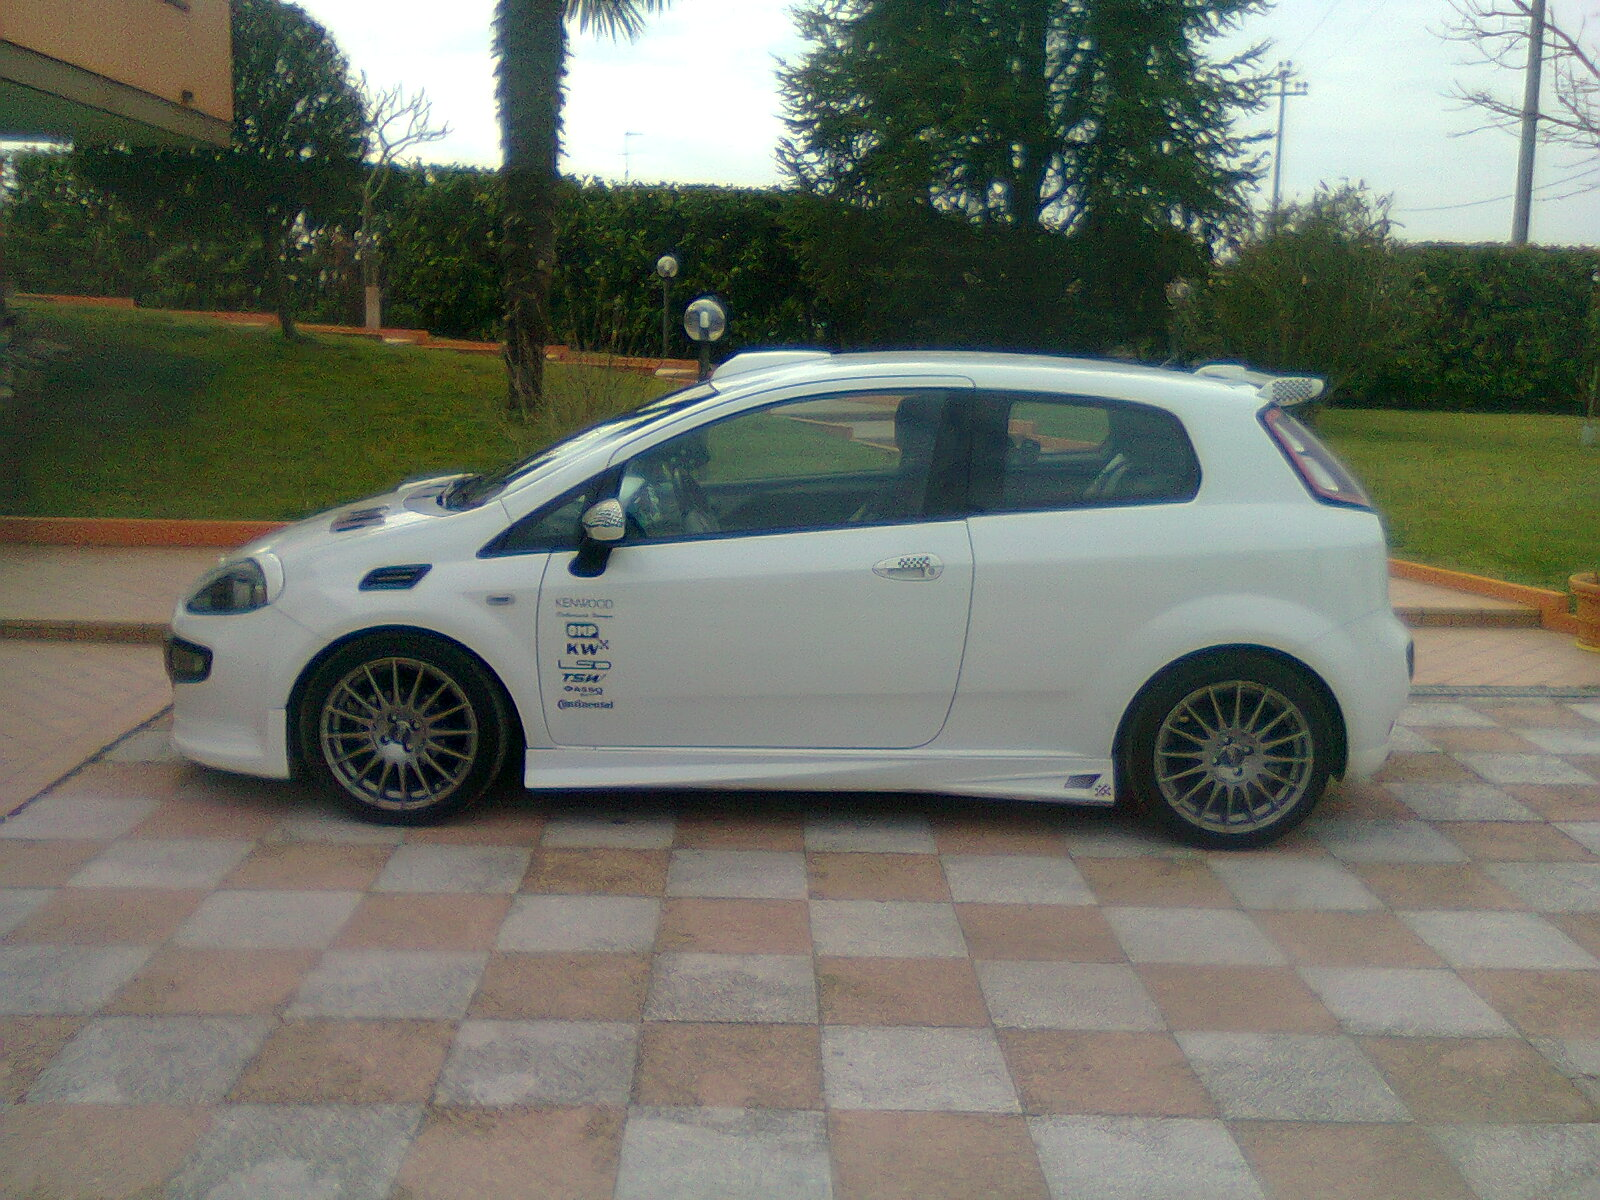 LA GRANDE PUNTO EVO TUNING by RICH